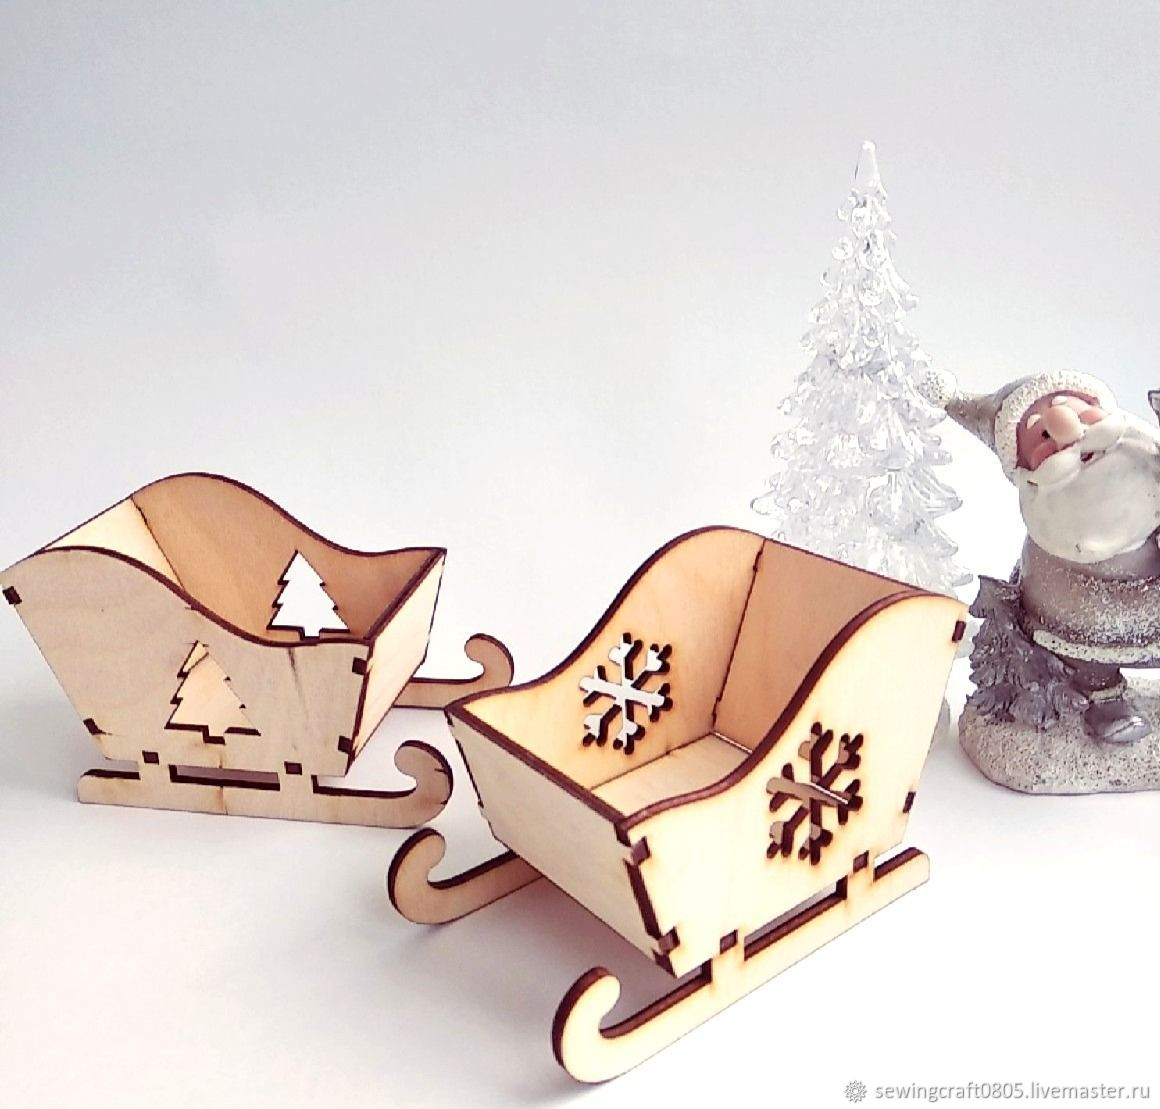 New year's sledge 2 types 11 cm, Blanks for dolls and toys, St. Petersburg,  Фото №1